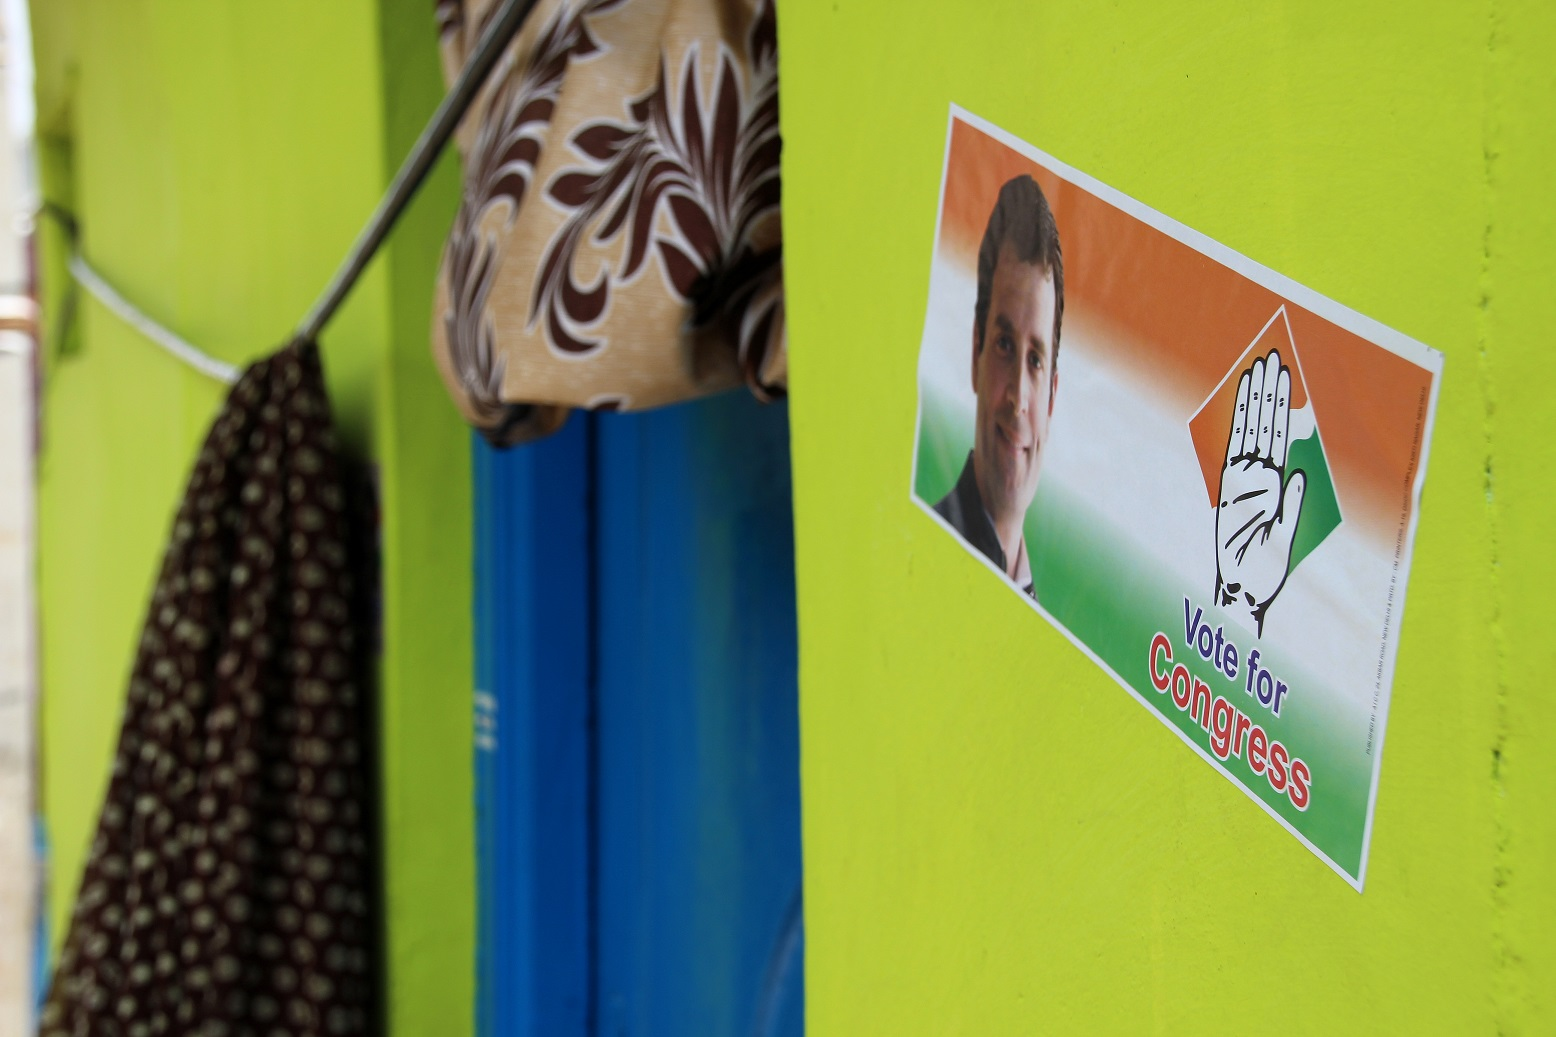 Vote for Congress Wahlplakat Indien Bild